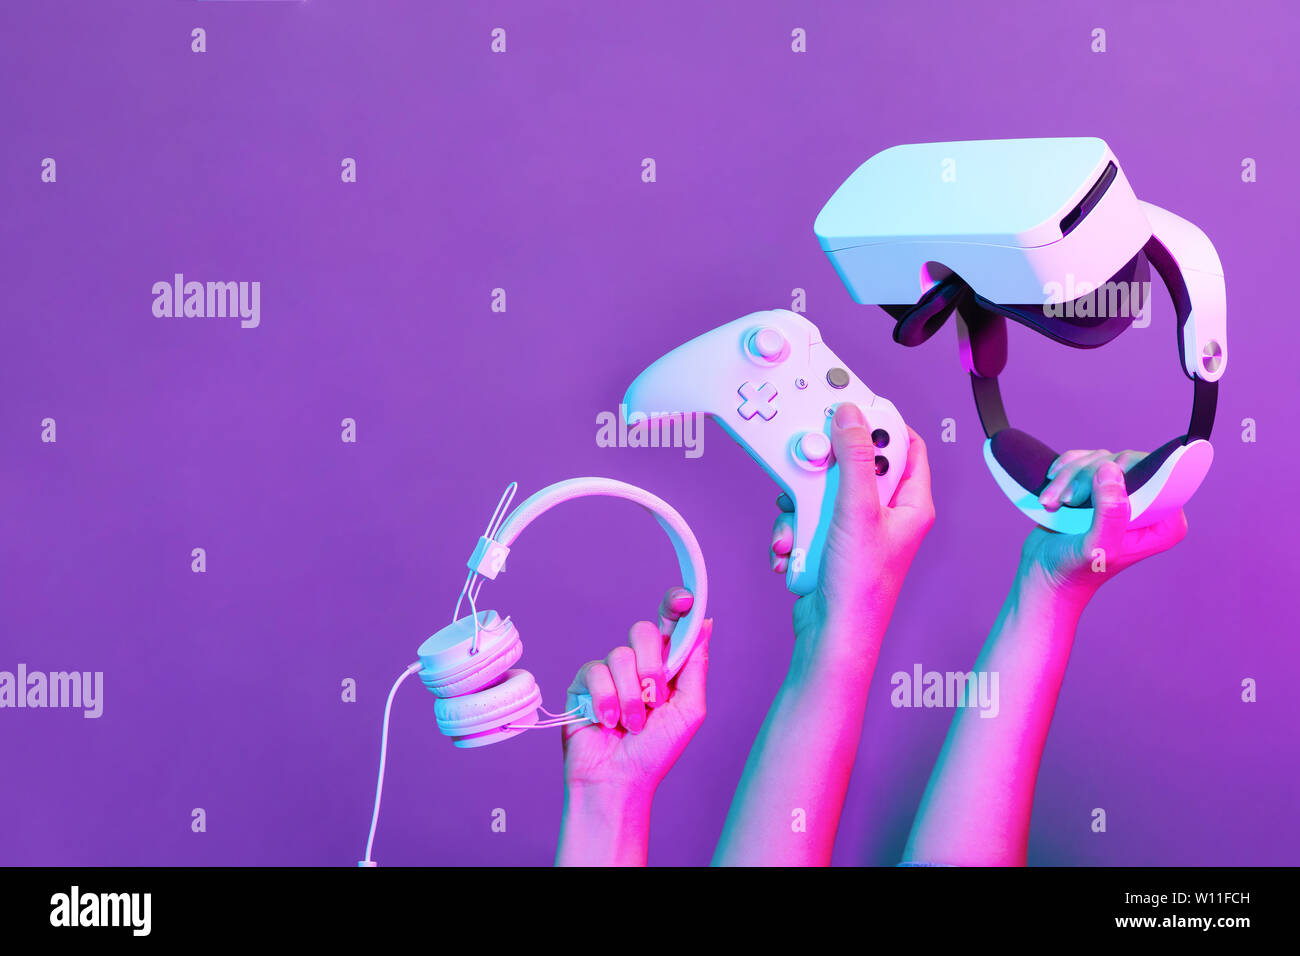 Set of hands with gamepad, virtual reality headset and